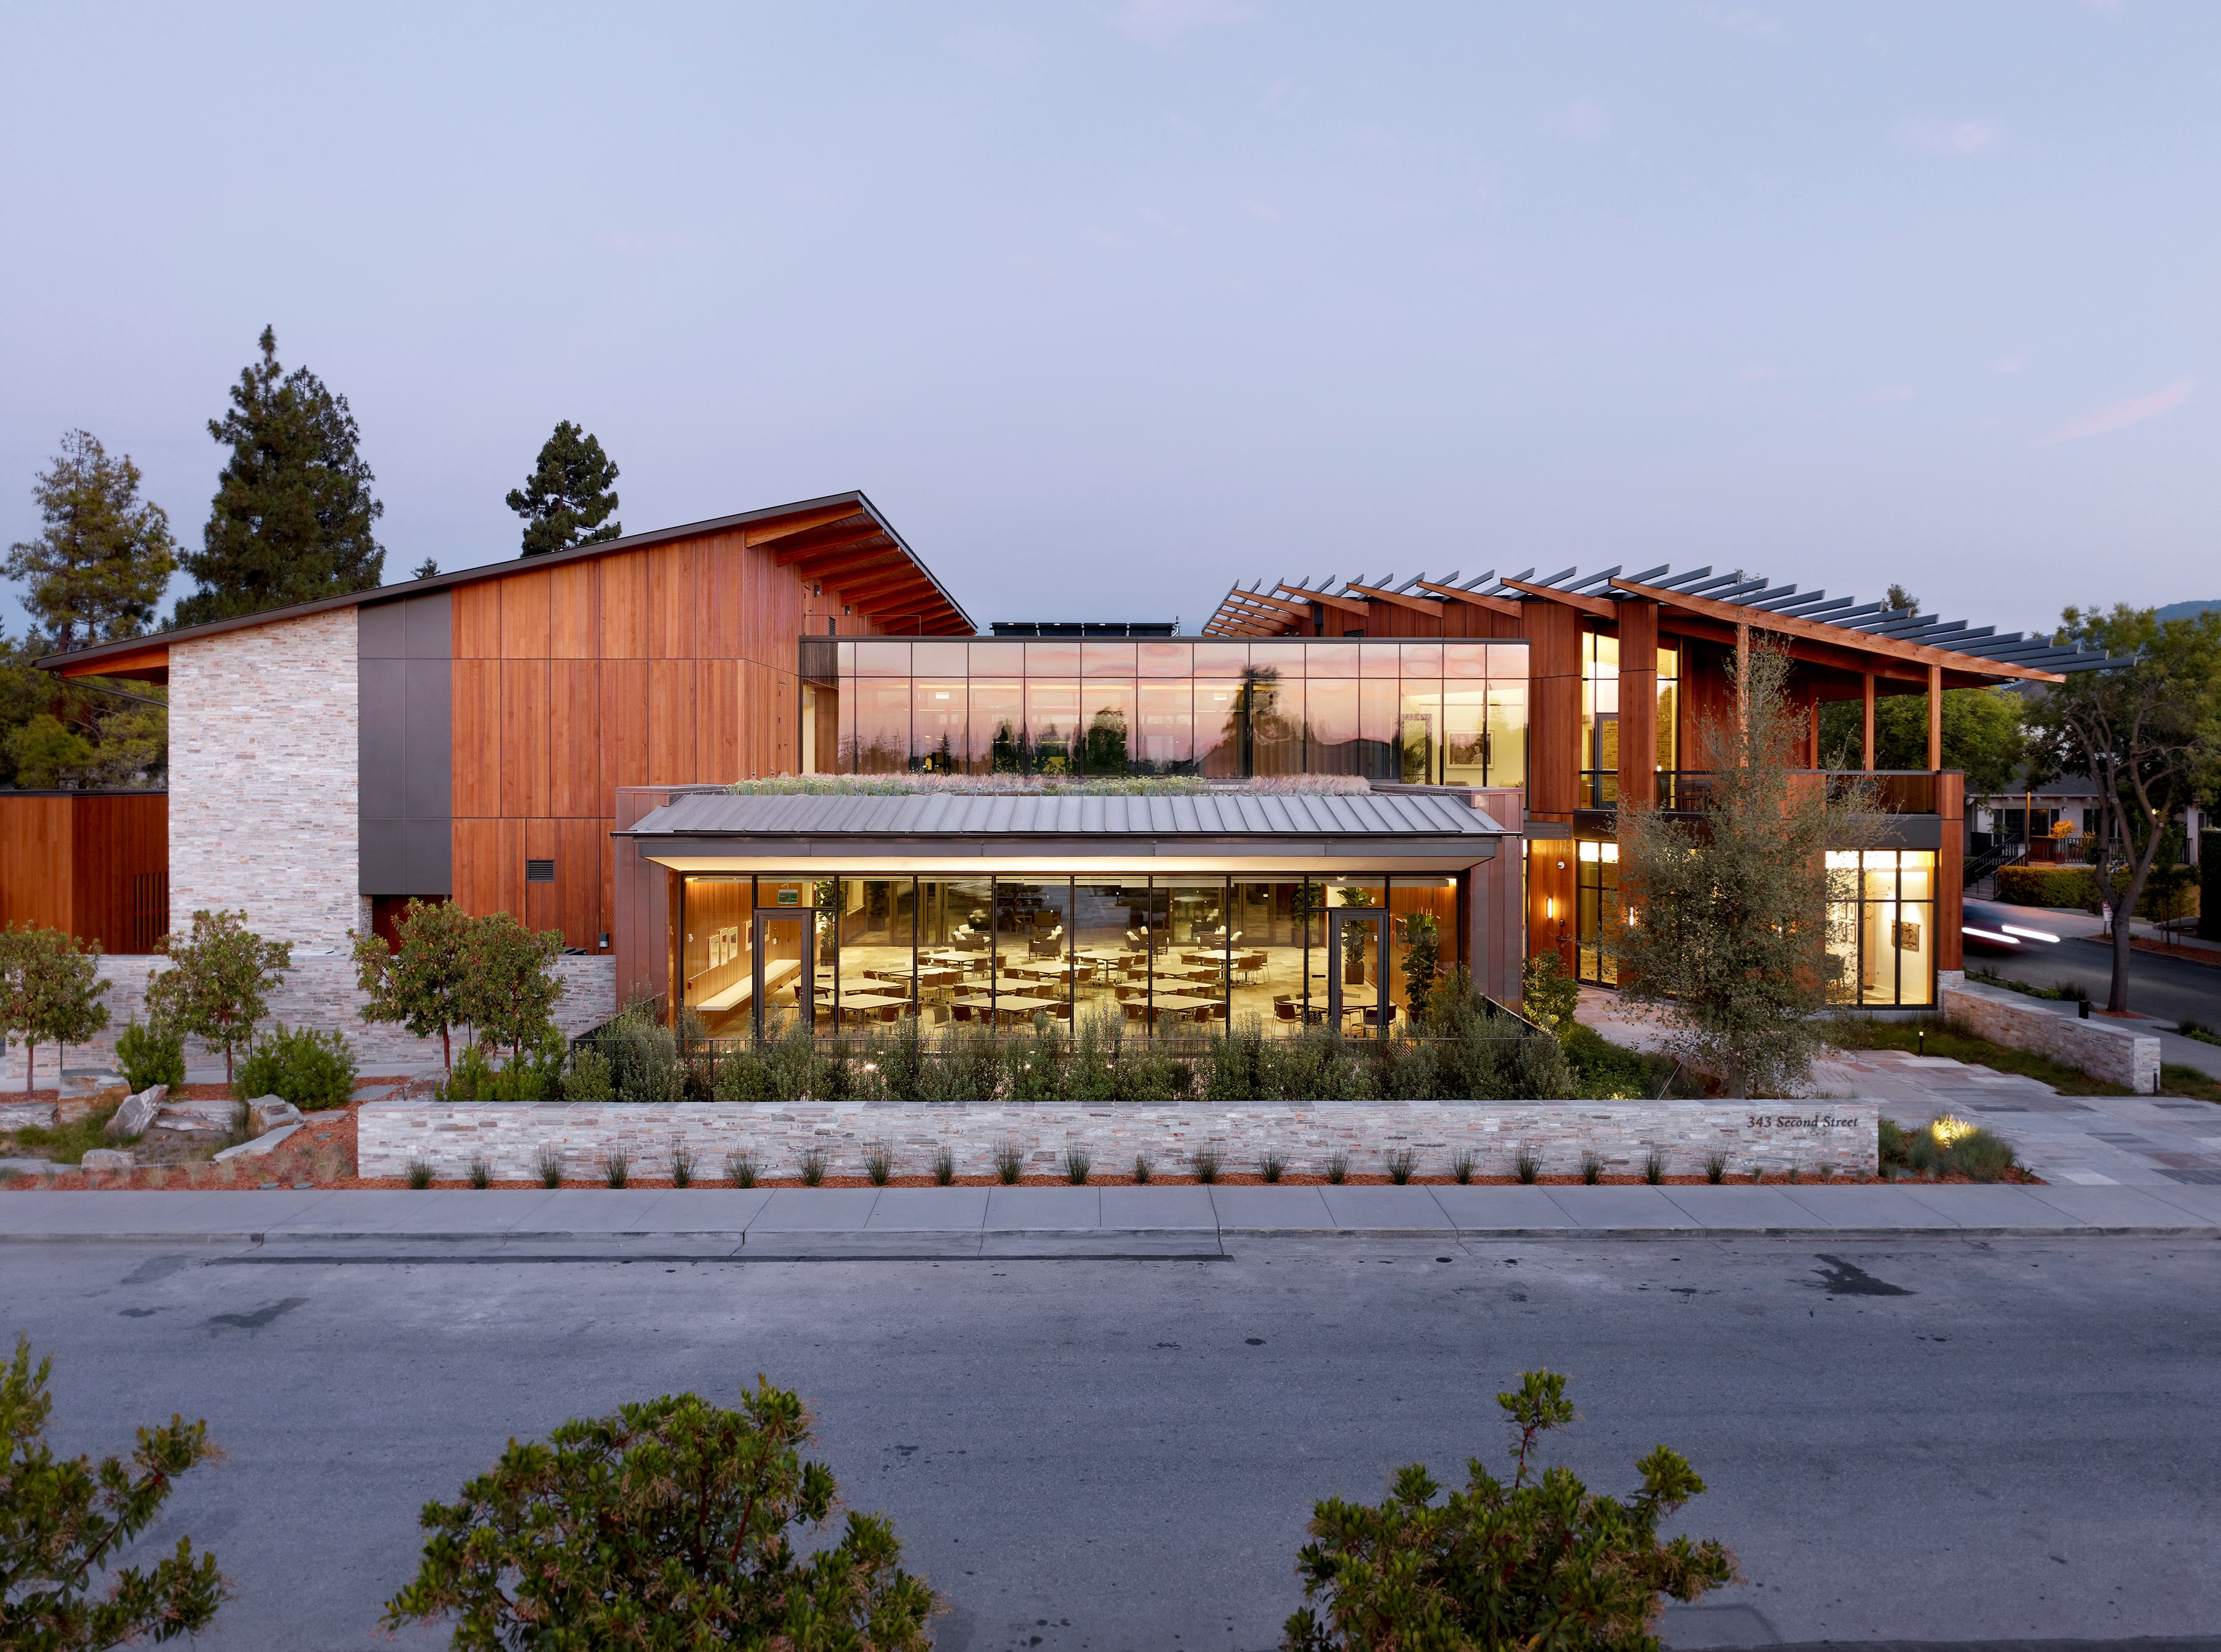 2014 Aia Cote Top Ten Winner The David And Lucile Packard